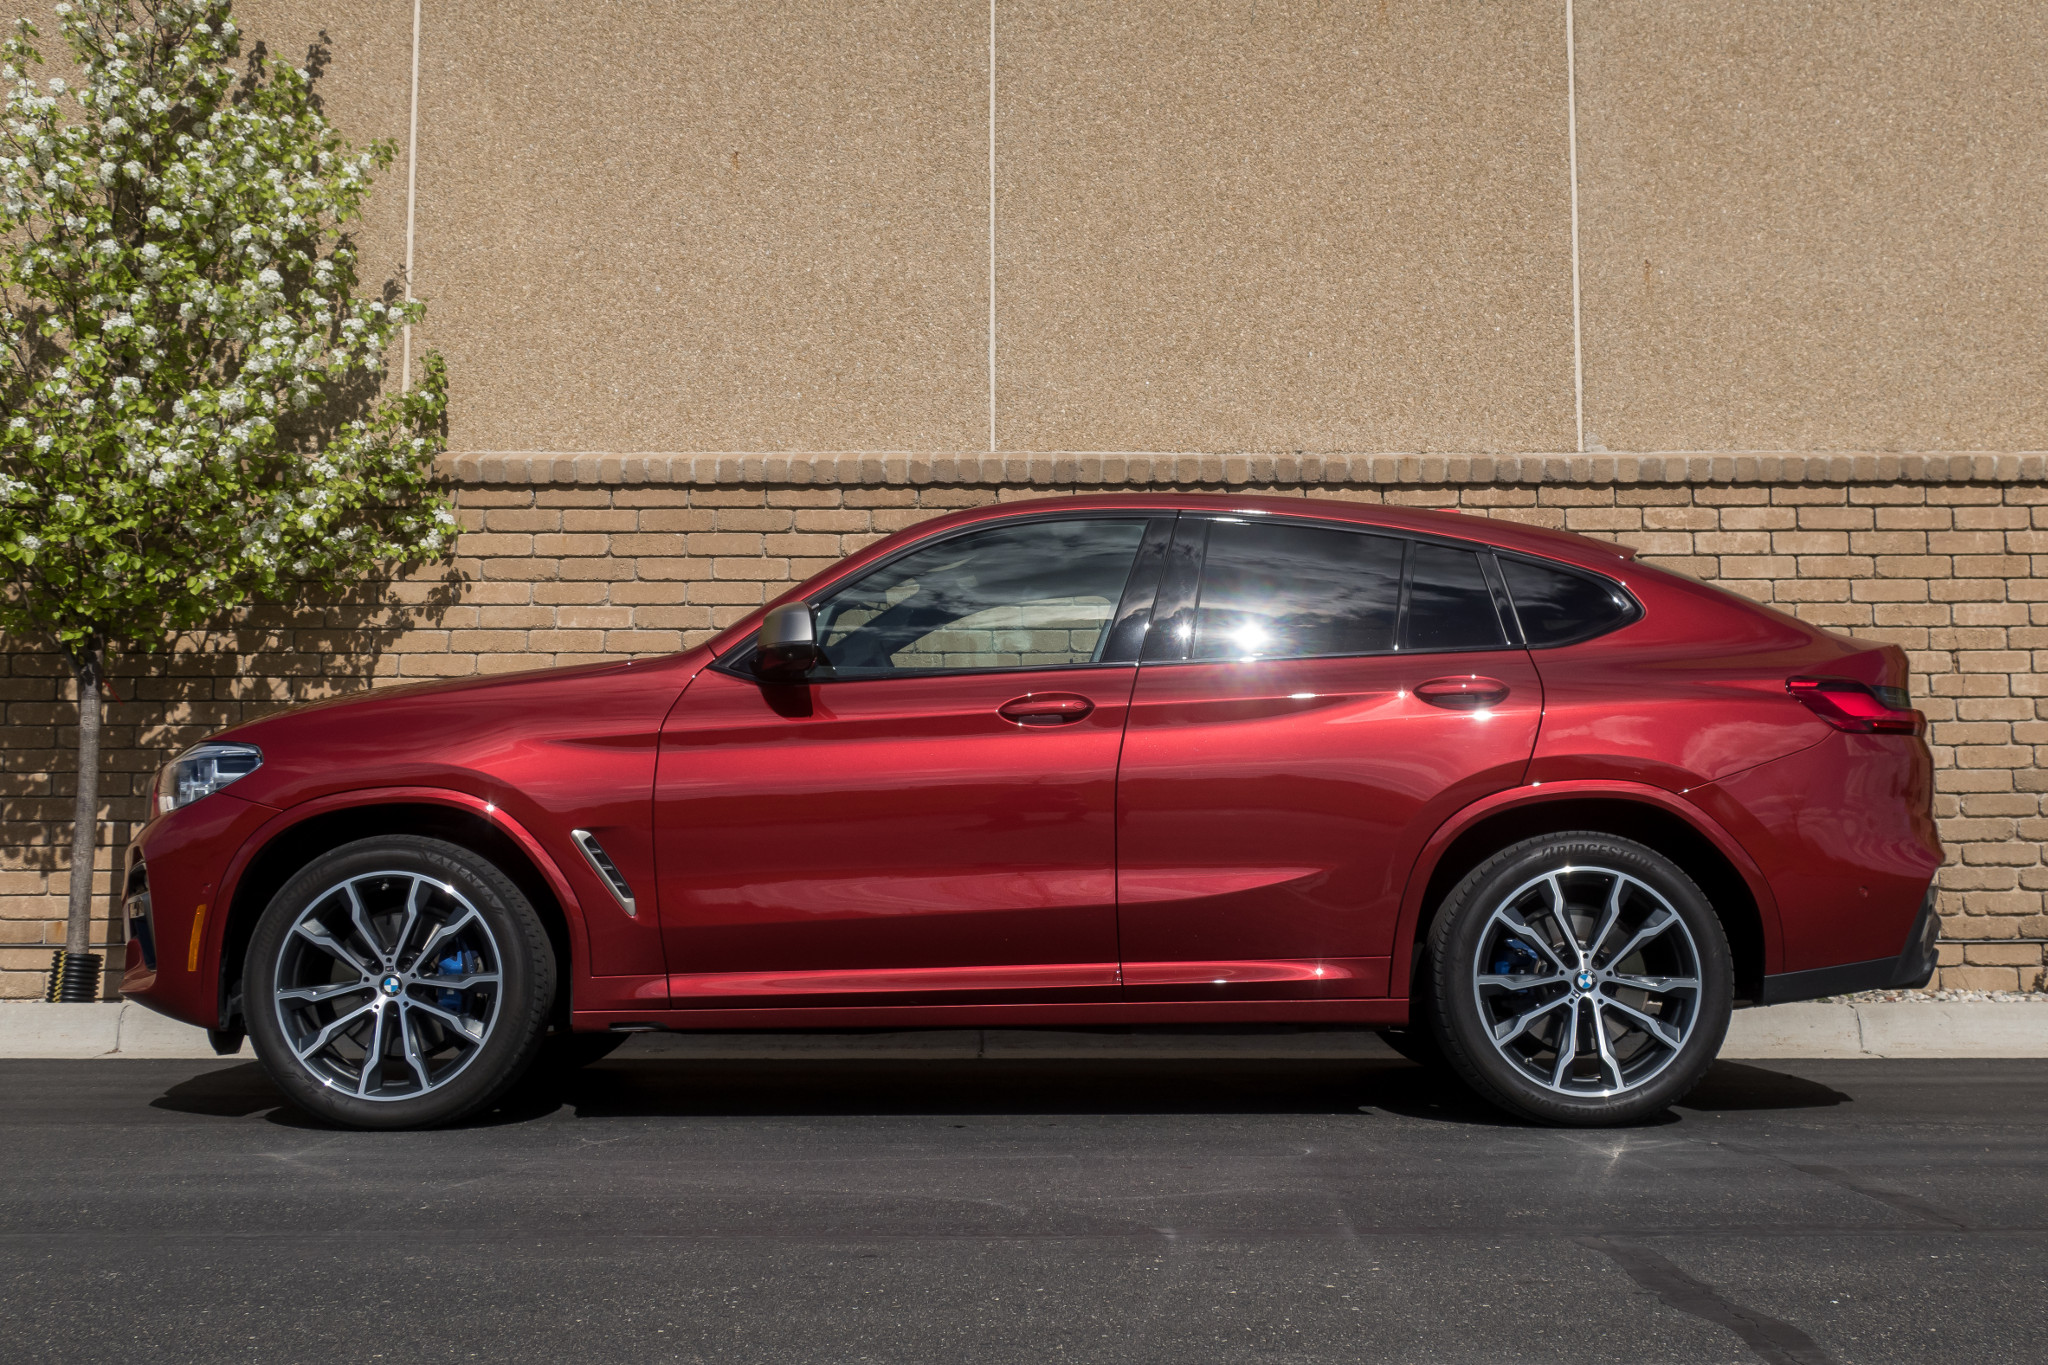 2019 BMW X4: 8 Things We Like and 2 Things We Don't